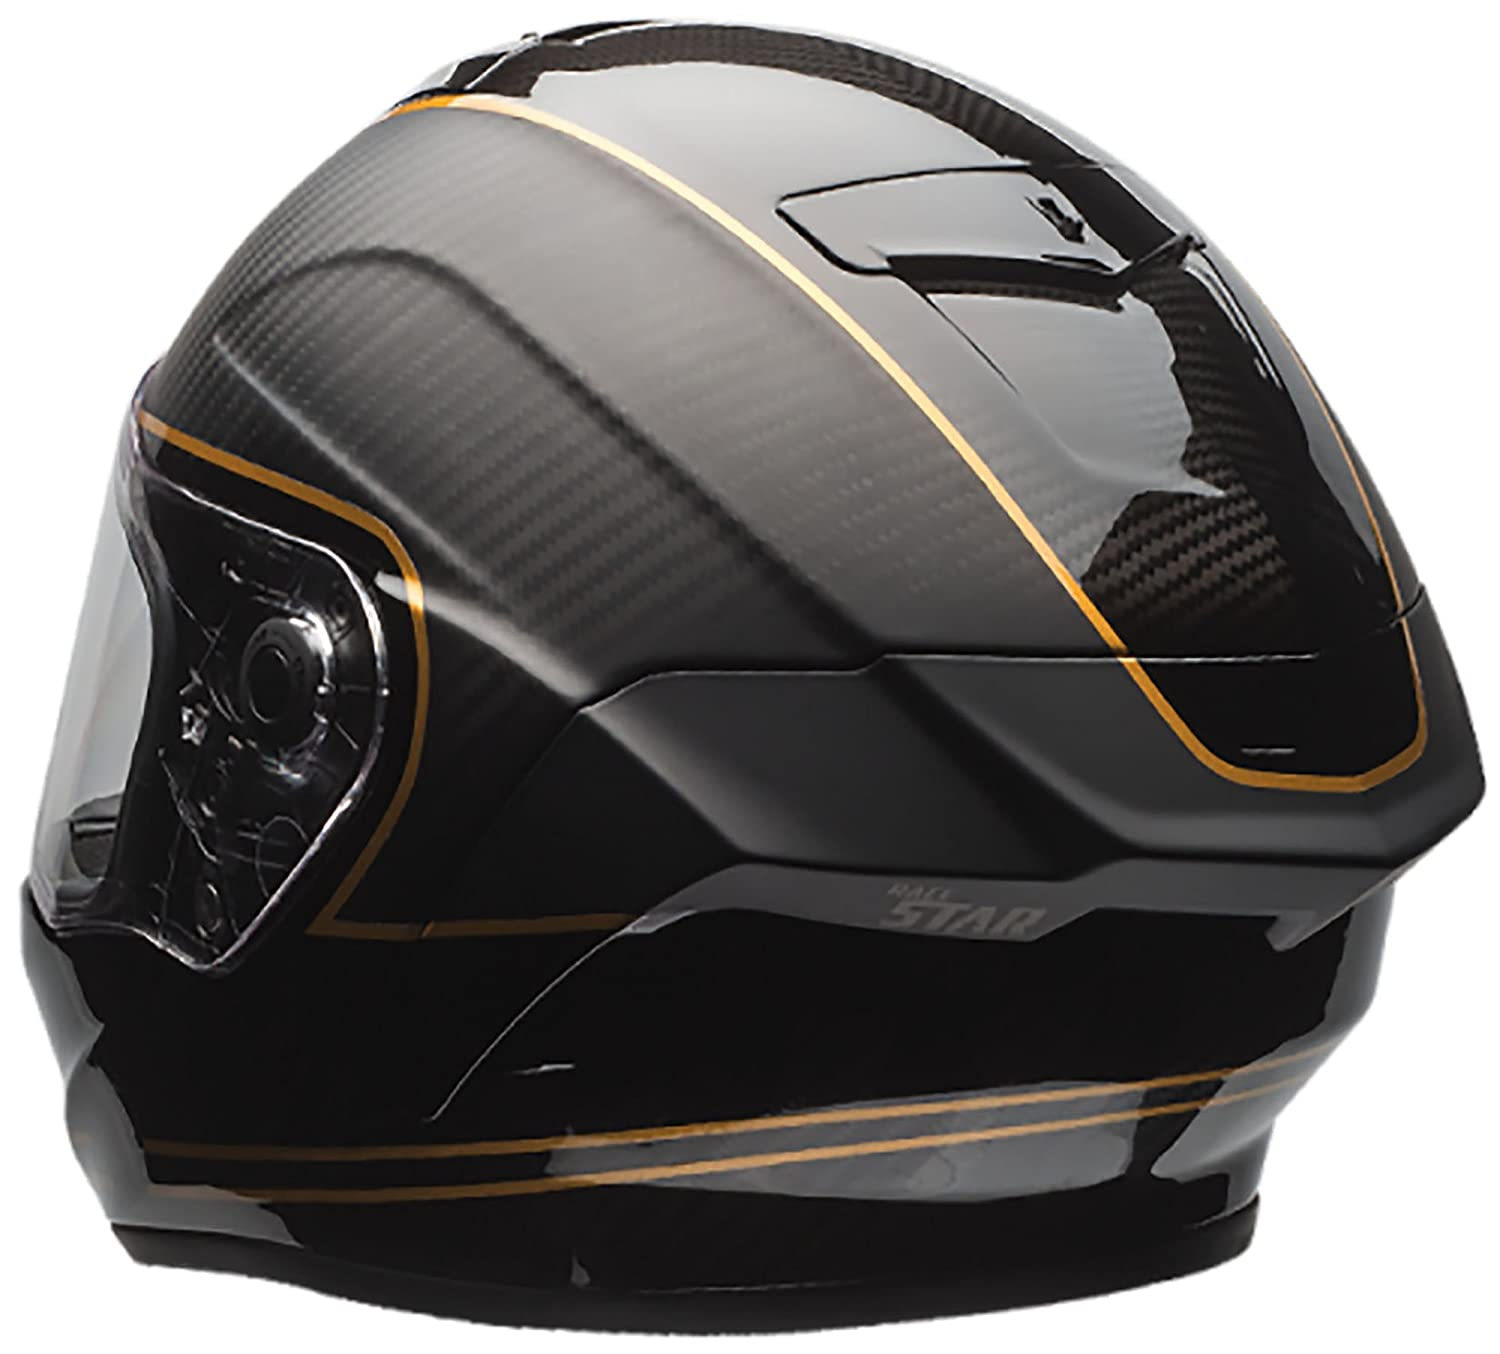 ab1b36c8 Amazon.com: Bell Race Star Full-Face Motorcycle Helmet (Ace Cafe Speed  Check Matte Black/Gold, Small): Automotive